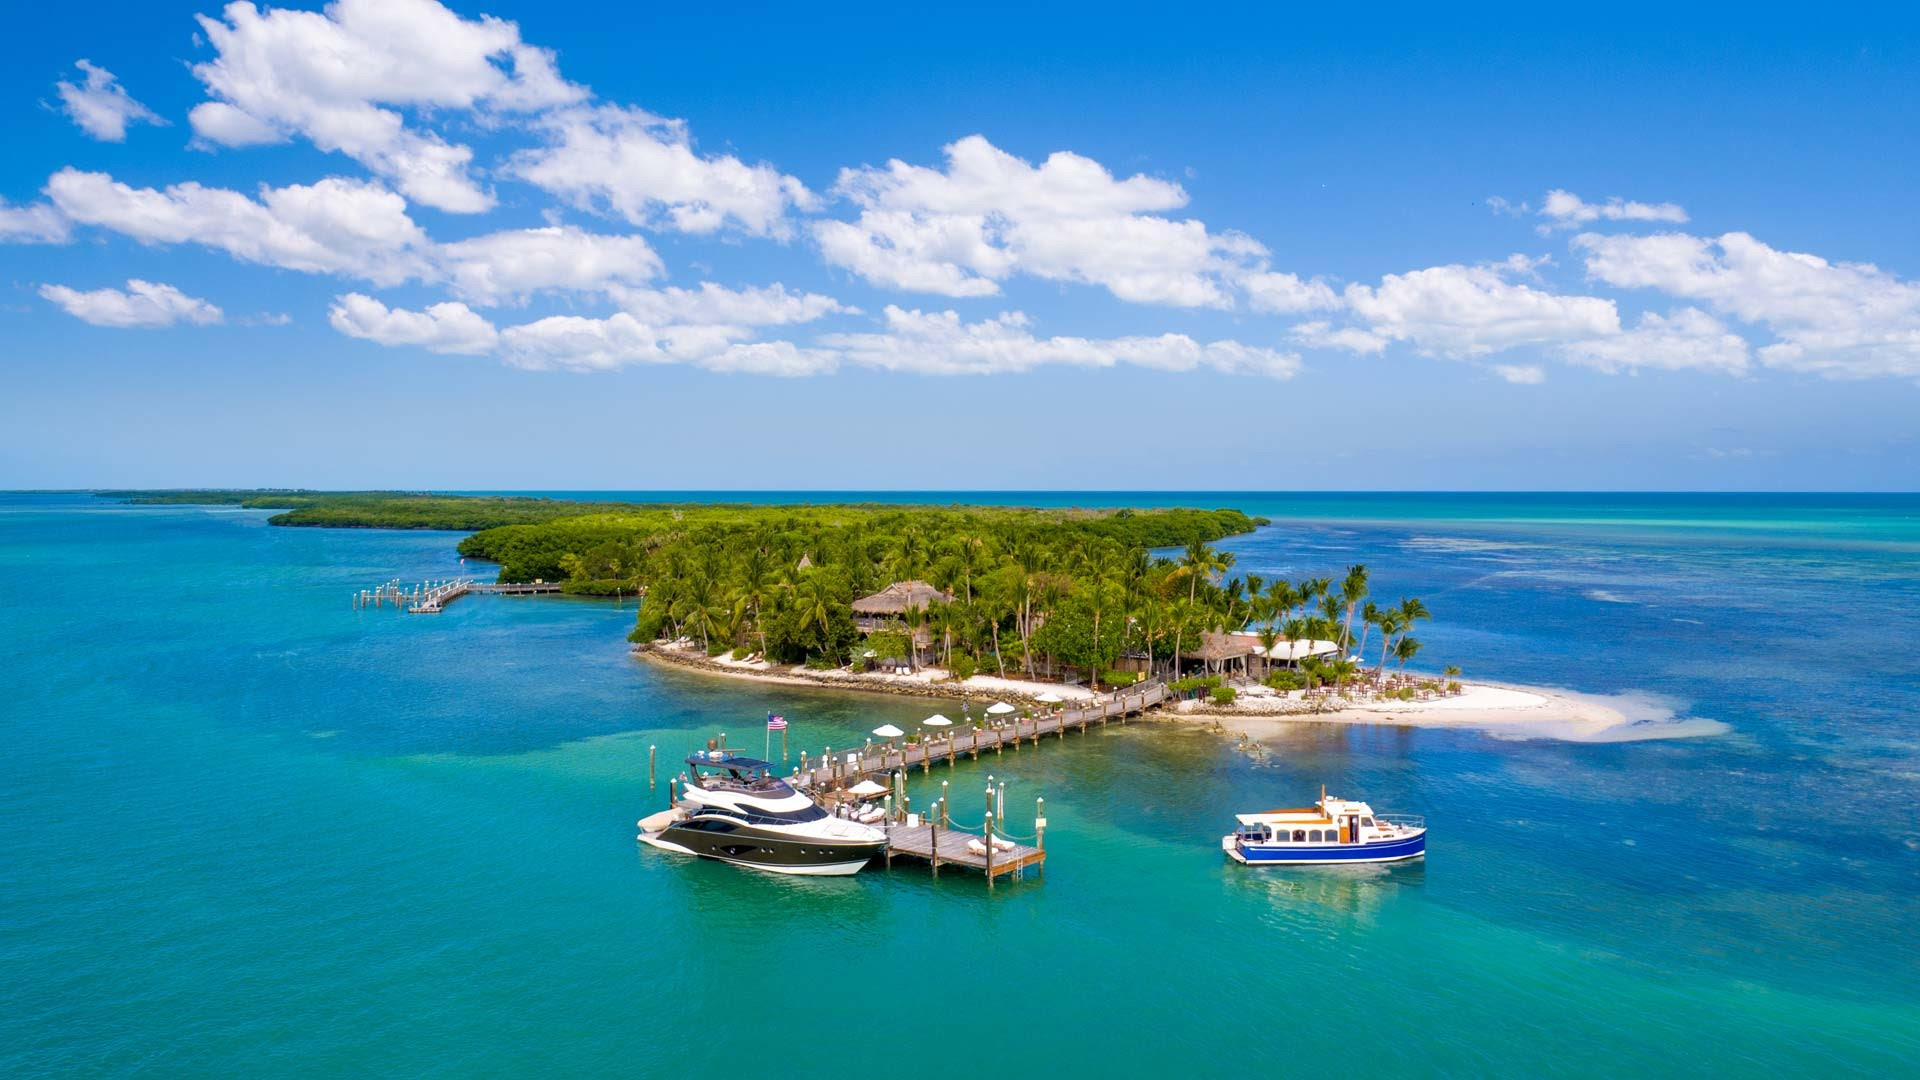 Florida Keys HD Wallpaper 55 images